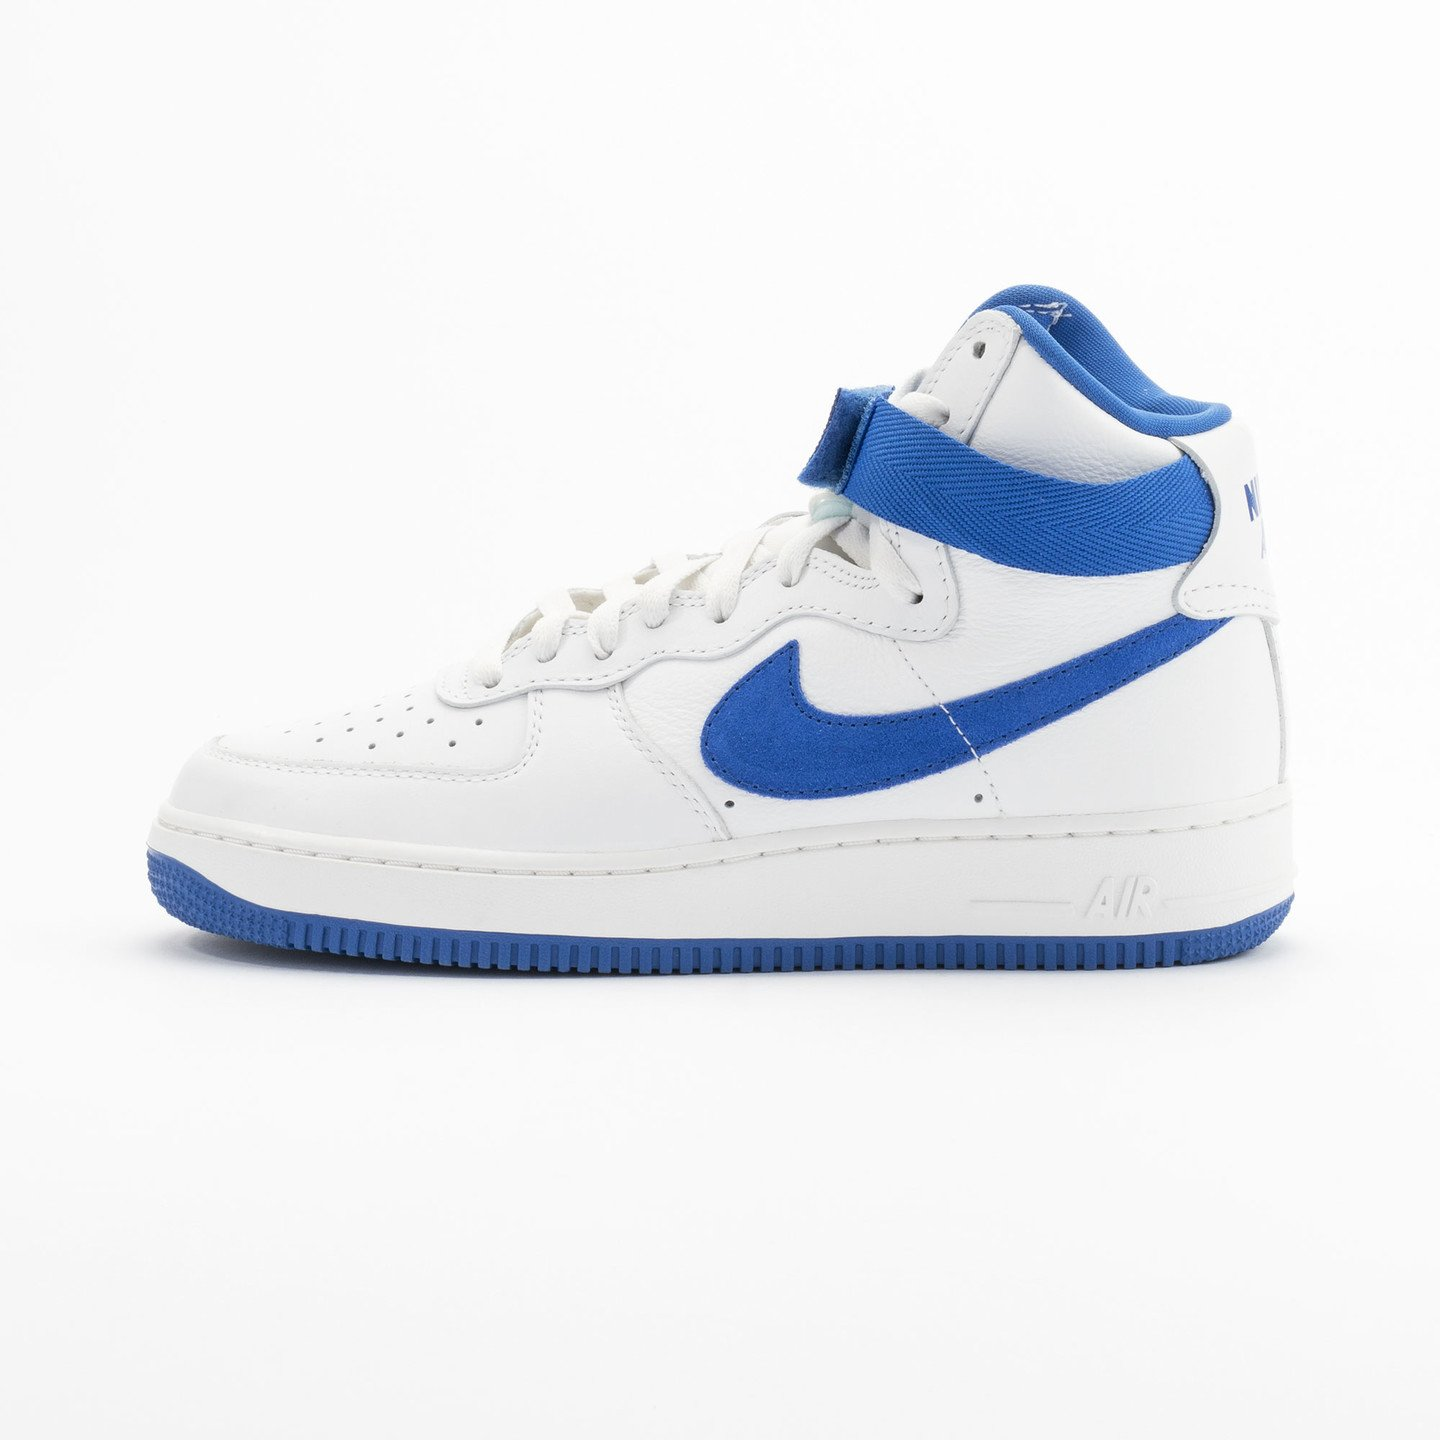 Nike Air Force 1 Hi Retro OG QS Summit White - Game Royal 743546-103-46